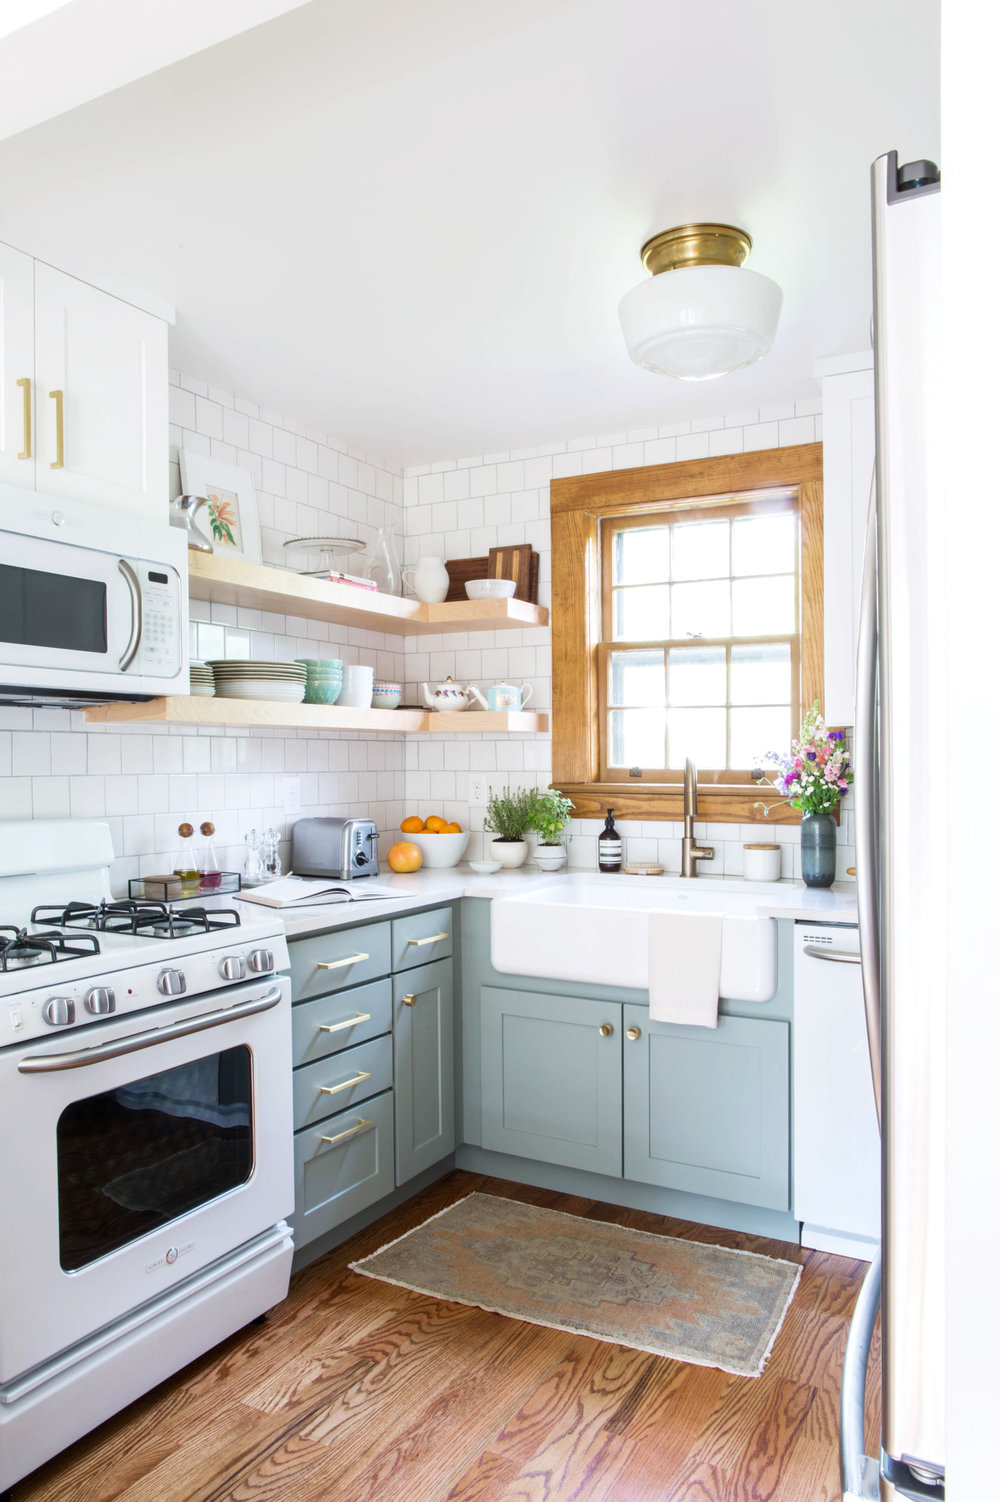 via  The Happy Tudor  -- I love this house! They actually combined a white stove + dishwasher with a stainless refrigerator and it looks amazing!